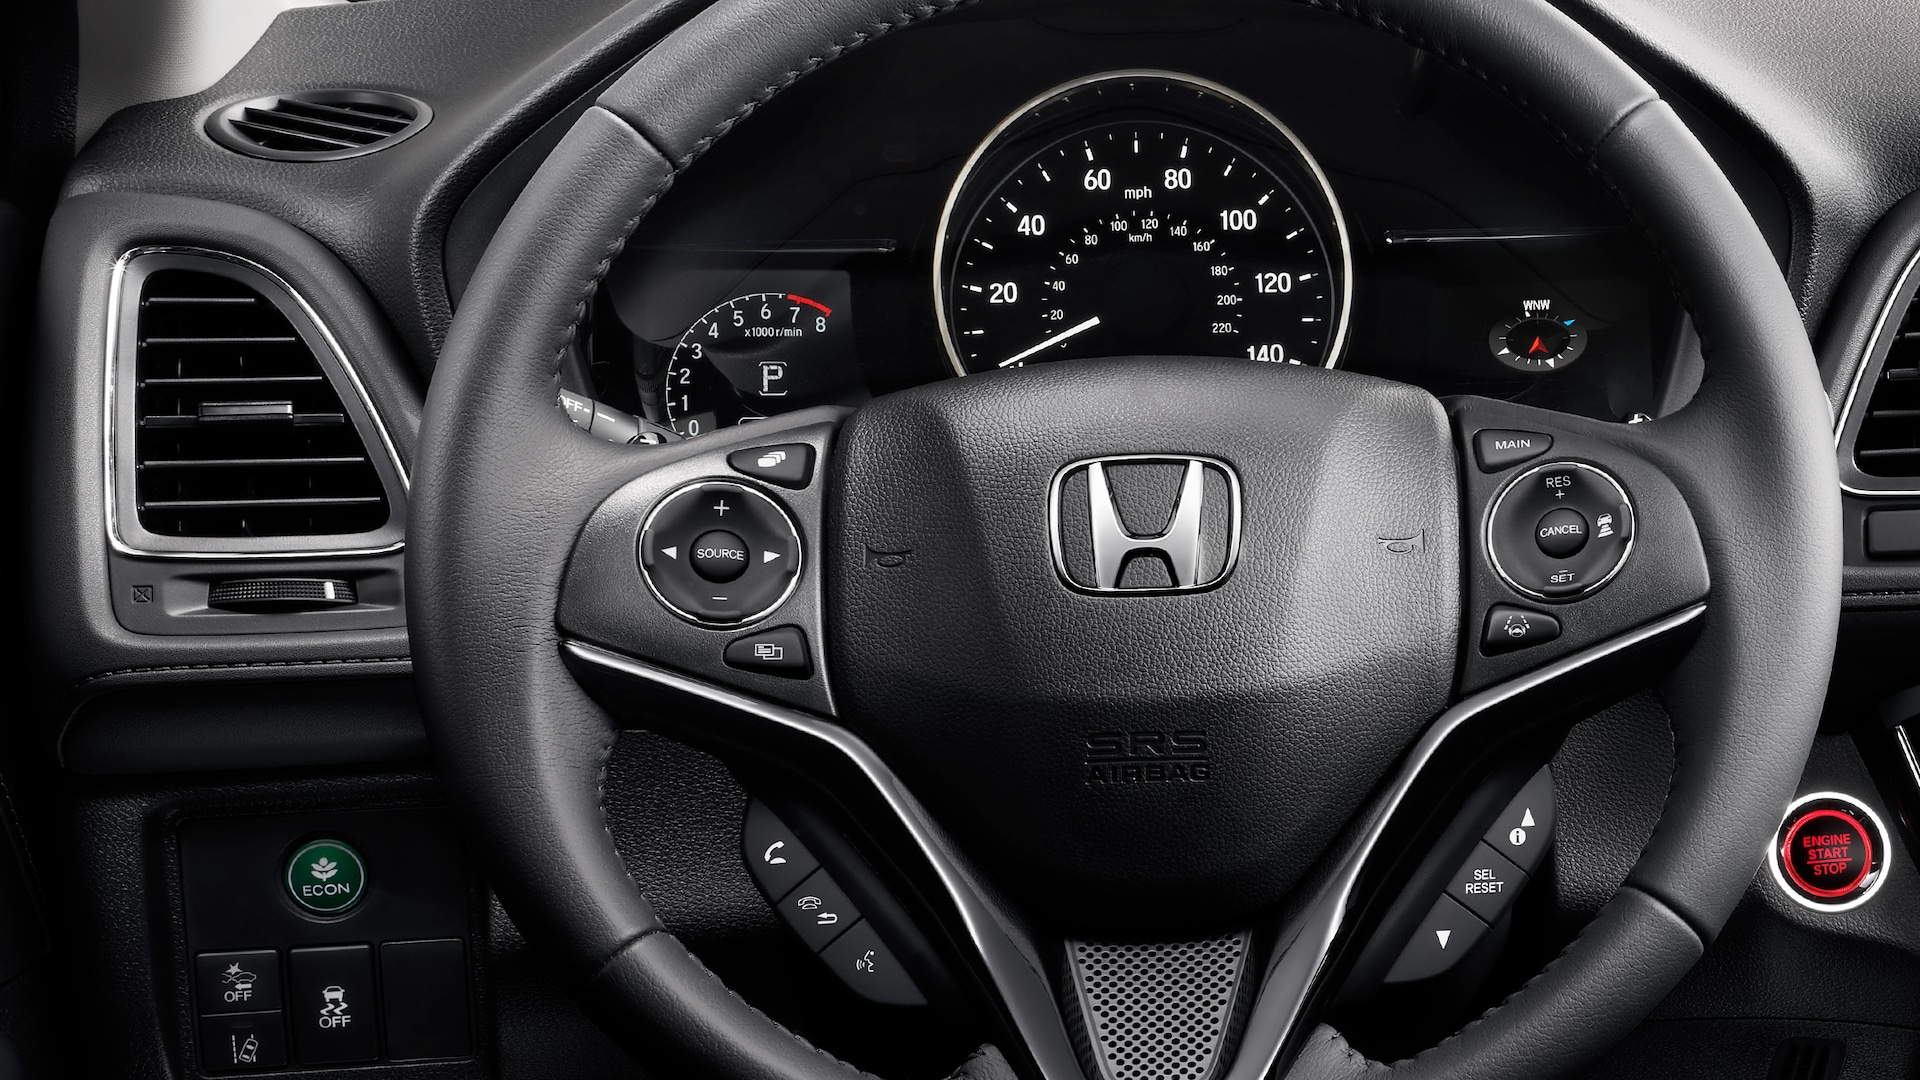 Steering wheel and dashboard detail in the 2021 Honda HR-V EX-L with Black Leather.